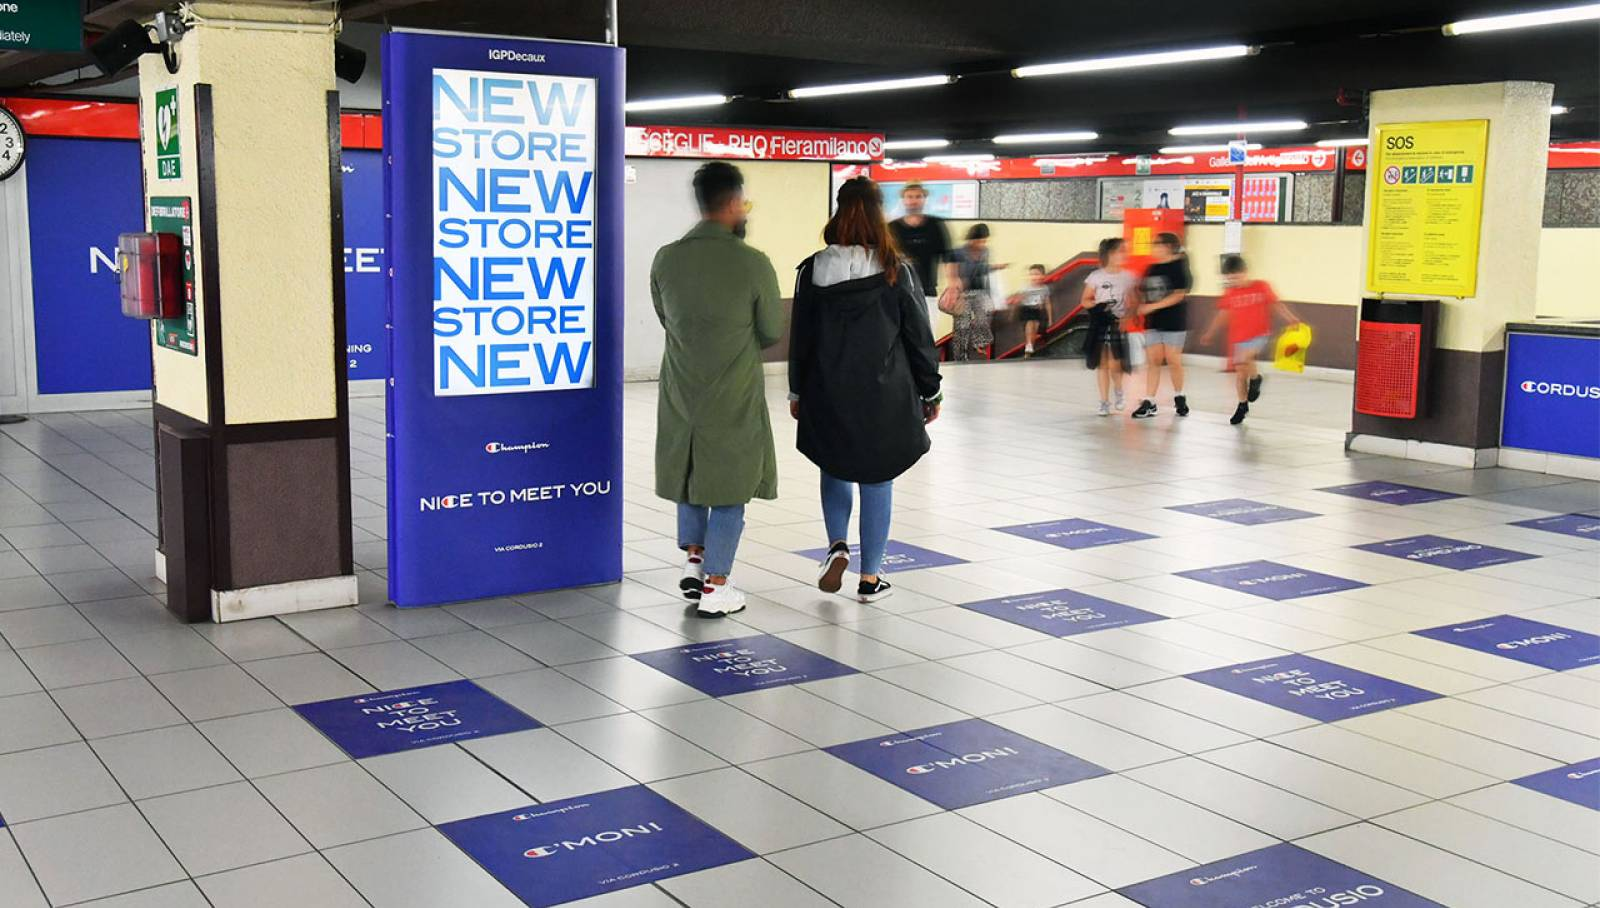 Underground advertising Milano Station Domination IGPDecaux for Champion